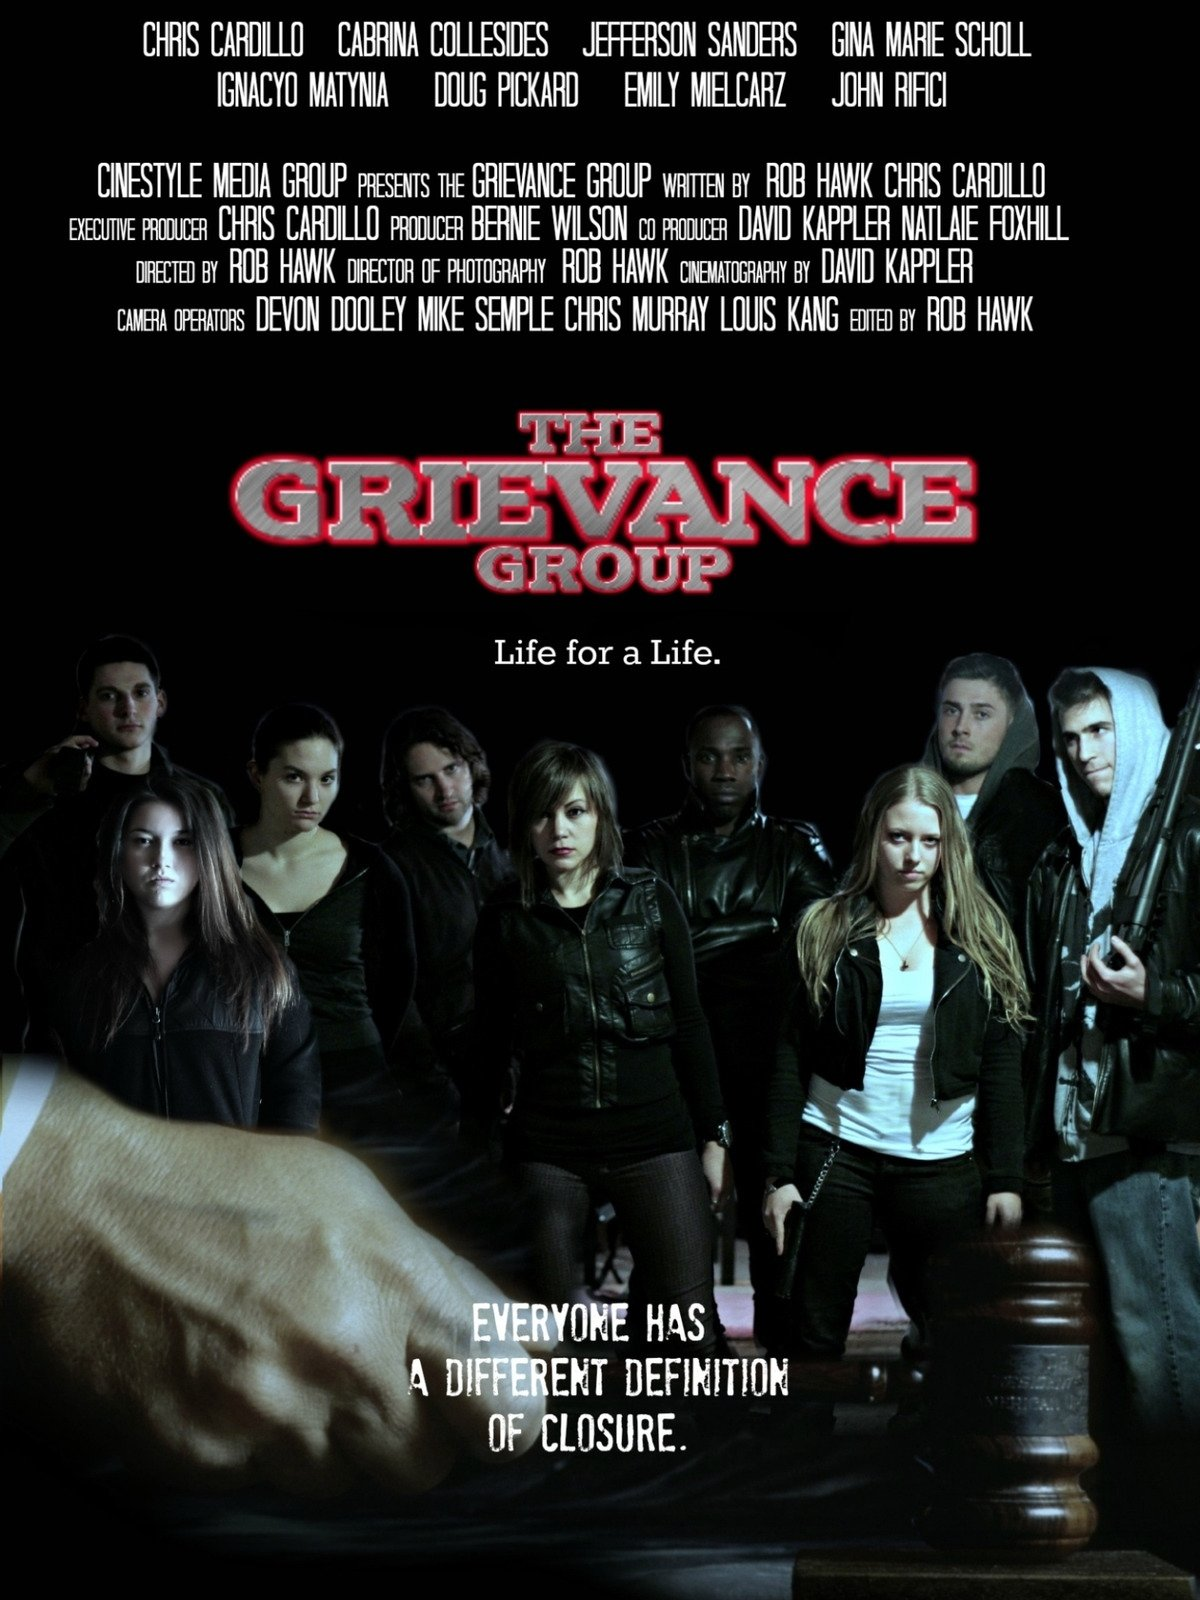 The Grievance Group: Life for a Life